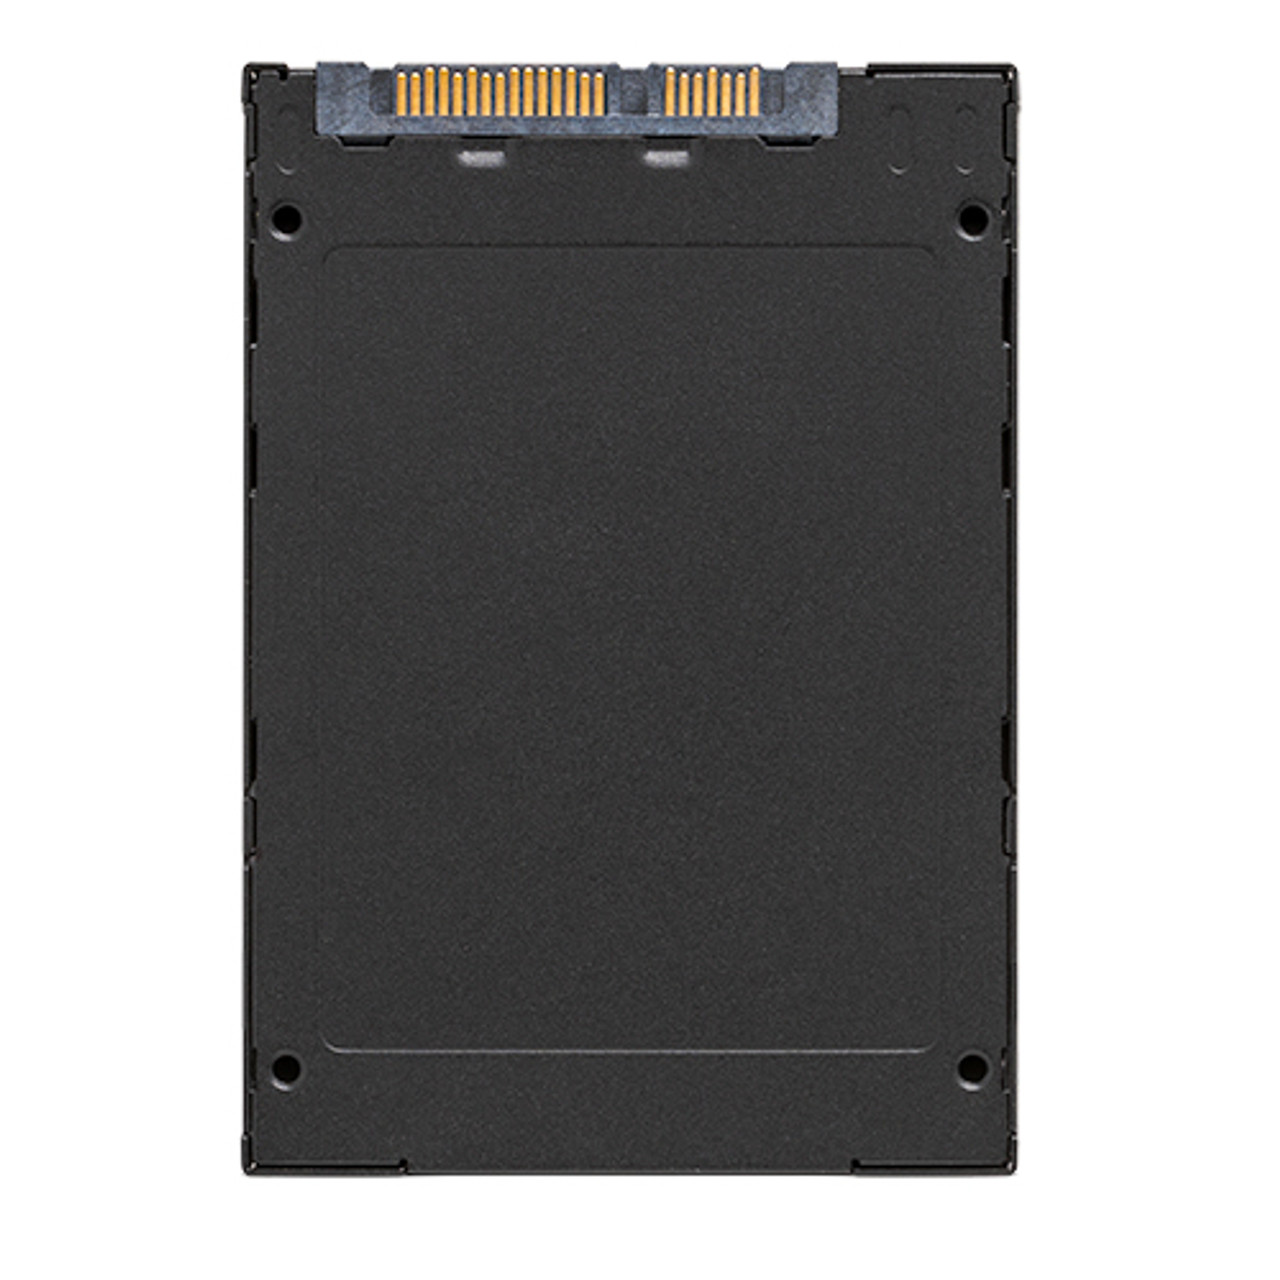 2TB OWC Mercury Extreme Pro 6Gb/s 2.5-inch SSD Serial-ATA 7mm Solid-State Drive